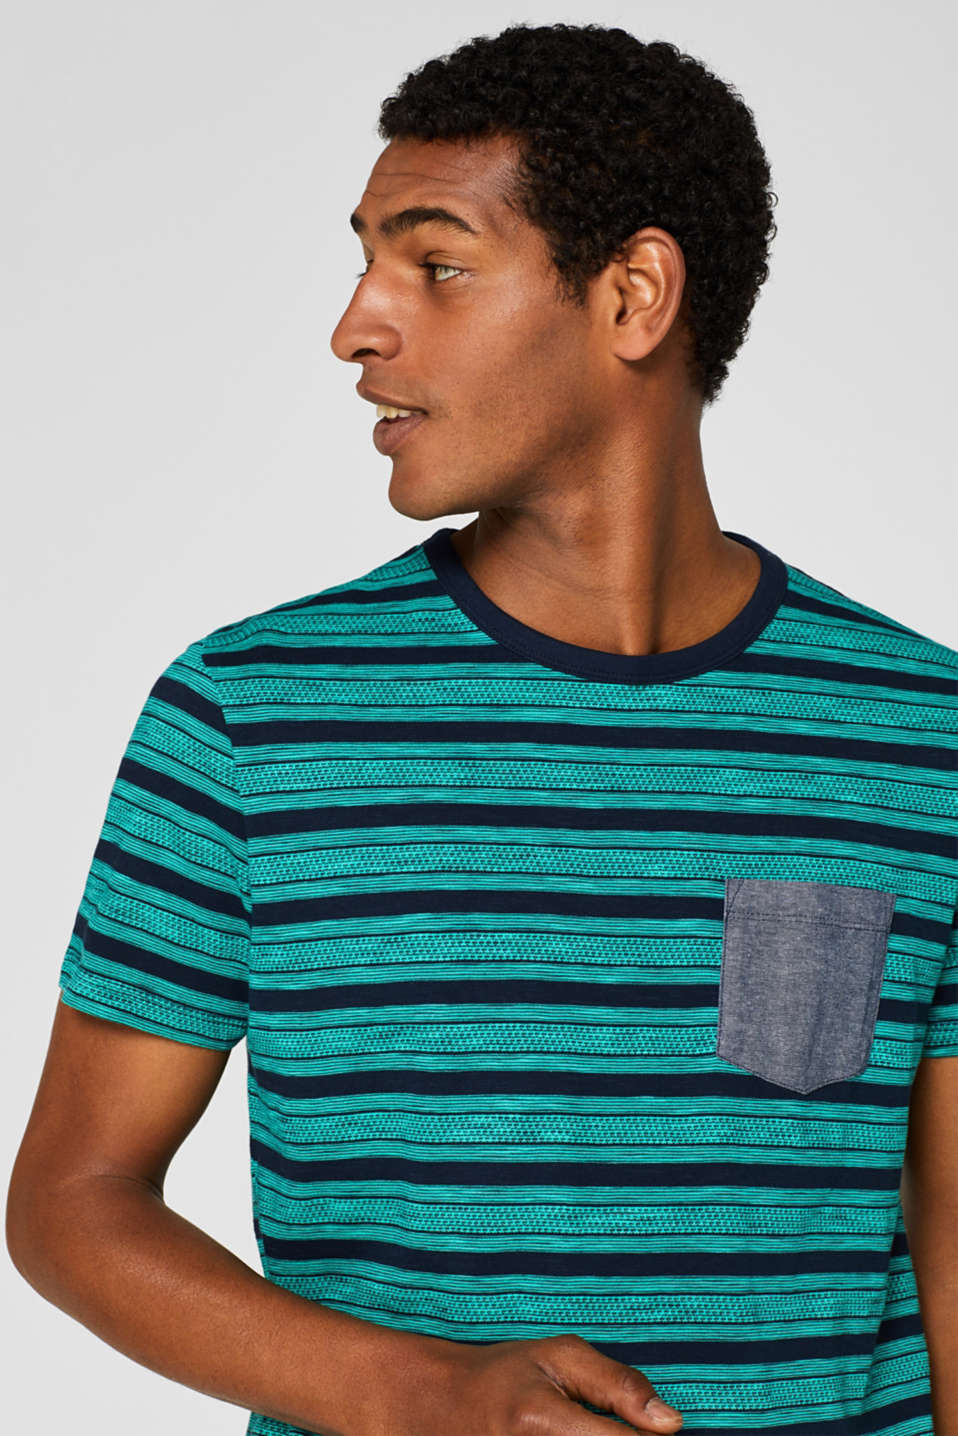 Jersey T-shirt with tribal stripes, 100% cotton, NAVY, detail image number 4